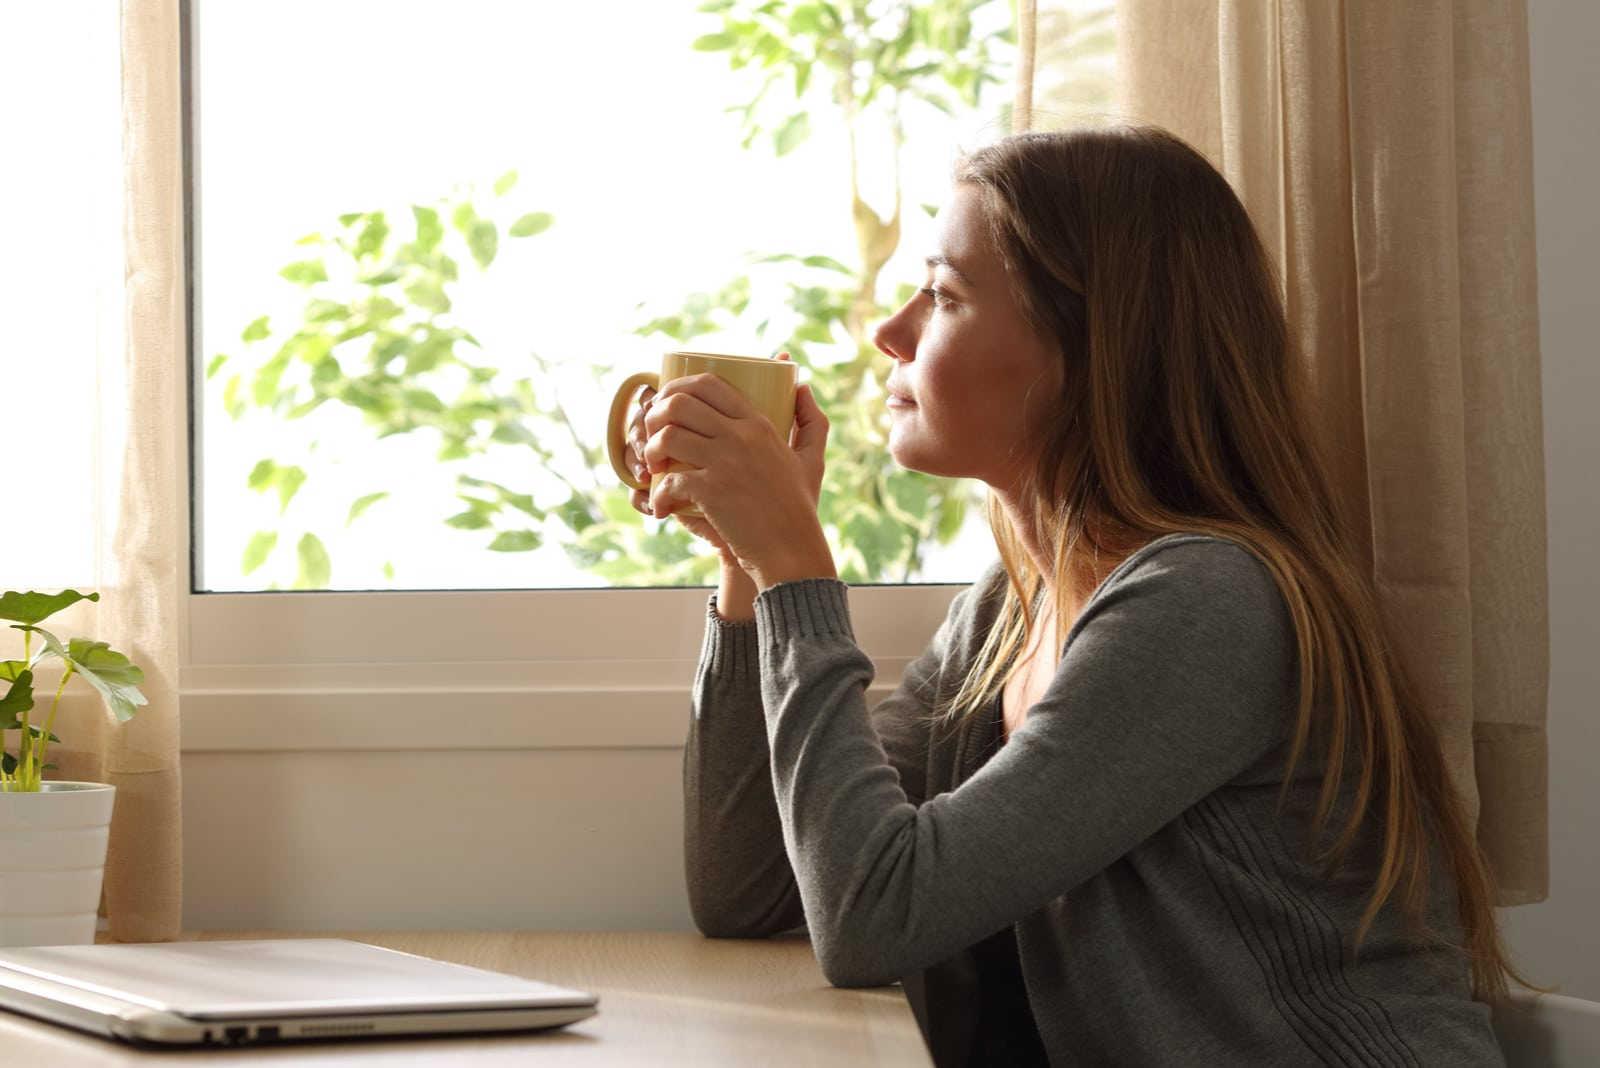 an imaginary woman sits and drinks coffee